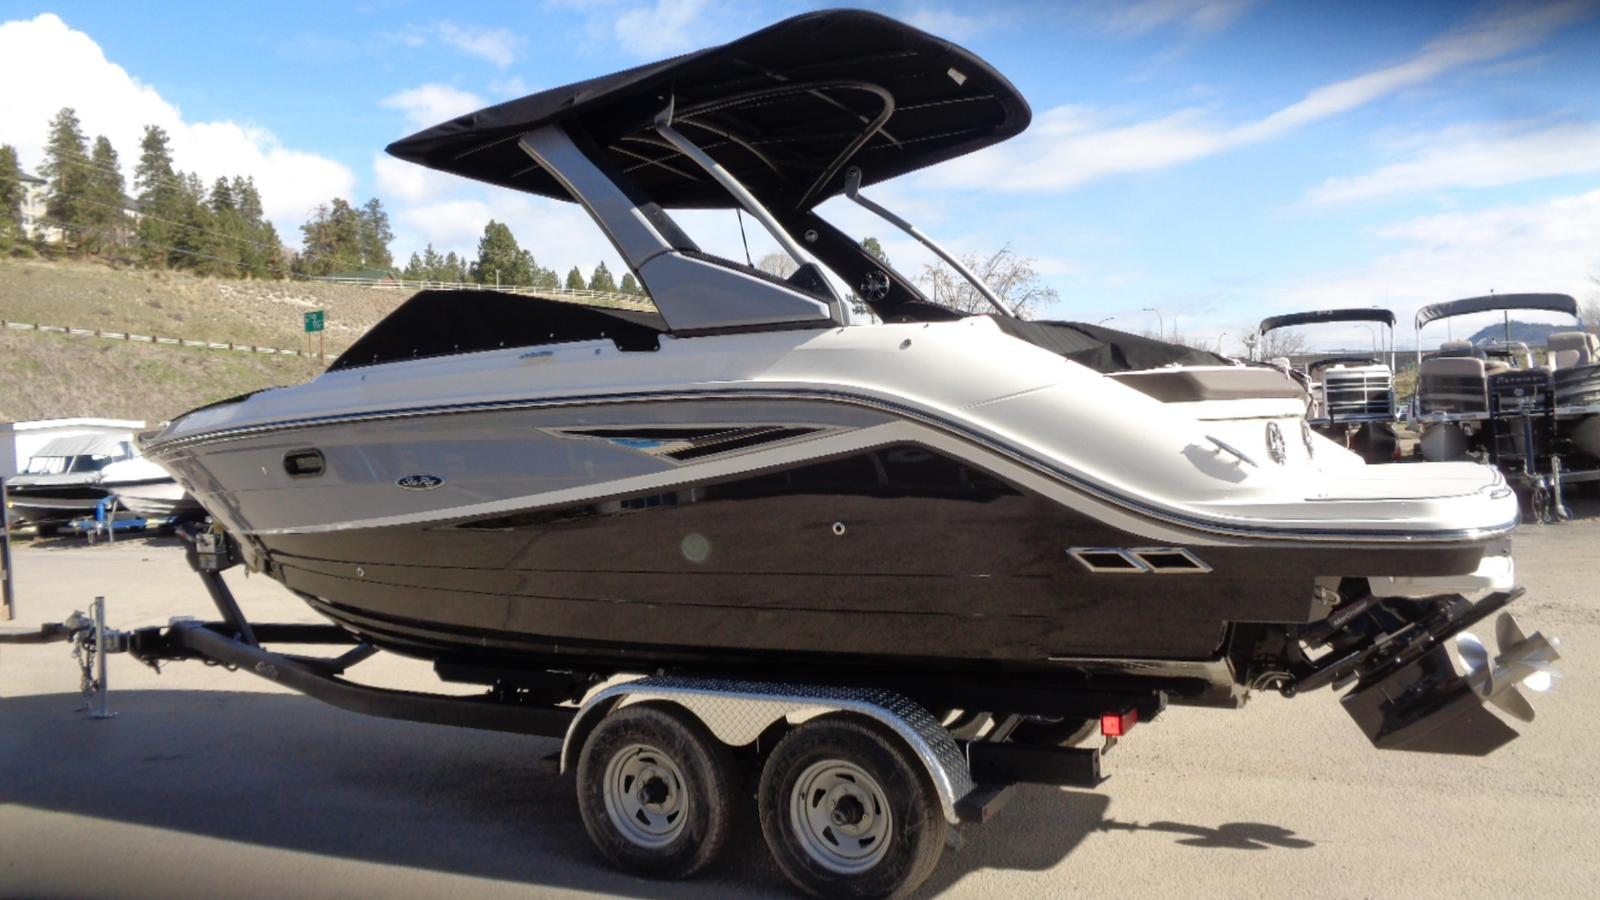 2019 Sea Ray boat for sale, model of the boat is SLX 250 & Image # 4 of 11